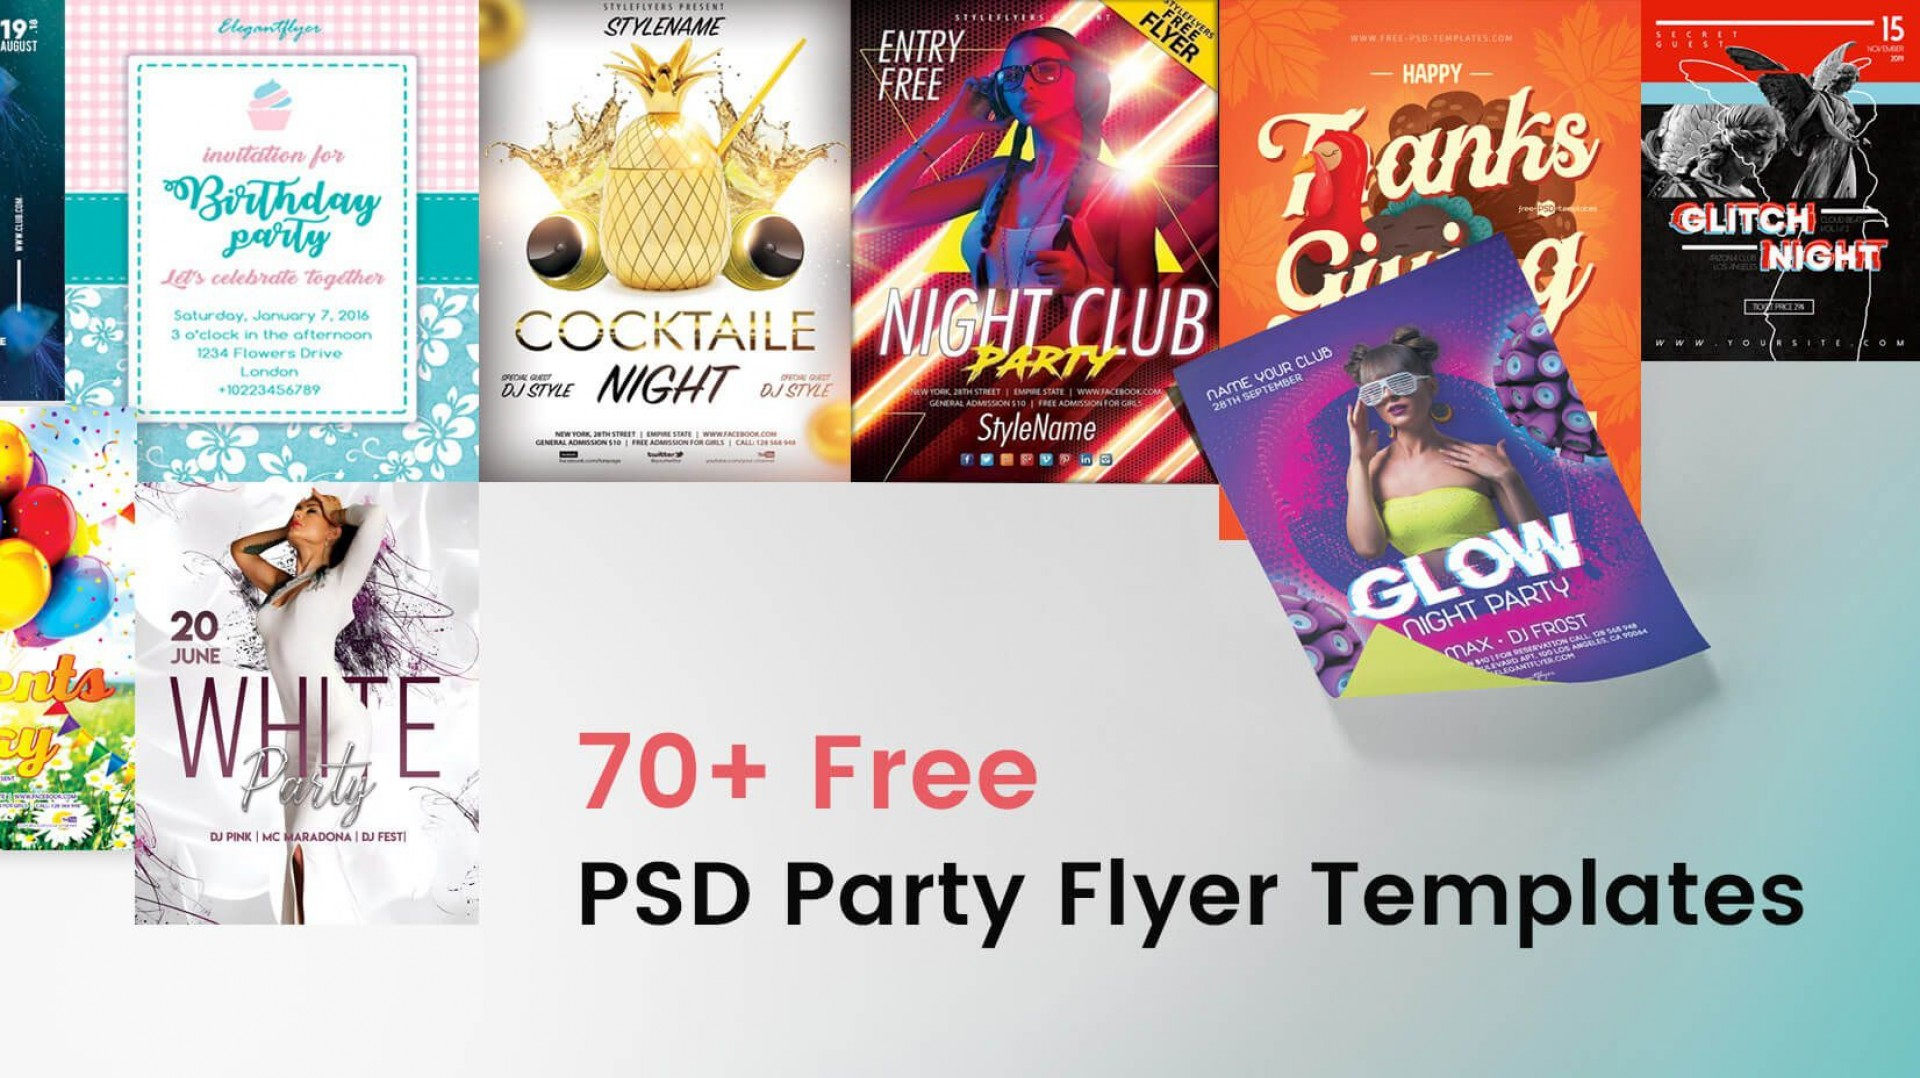 008 Impressive Free Printable Event Flyer Template High Resolution  Templates Church1920